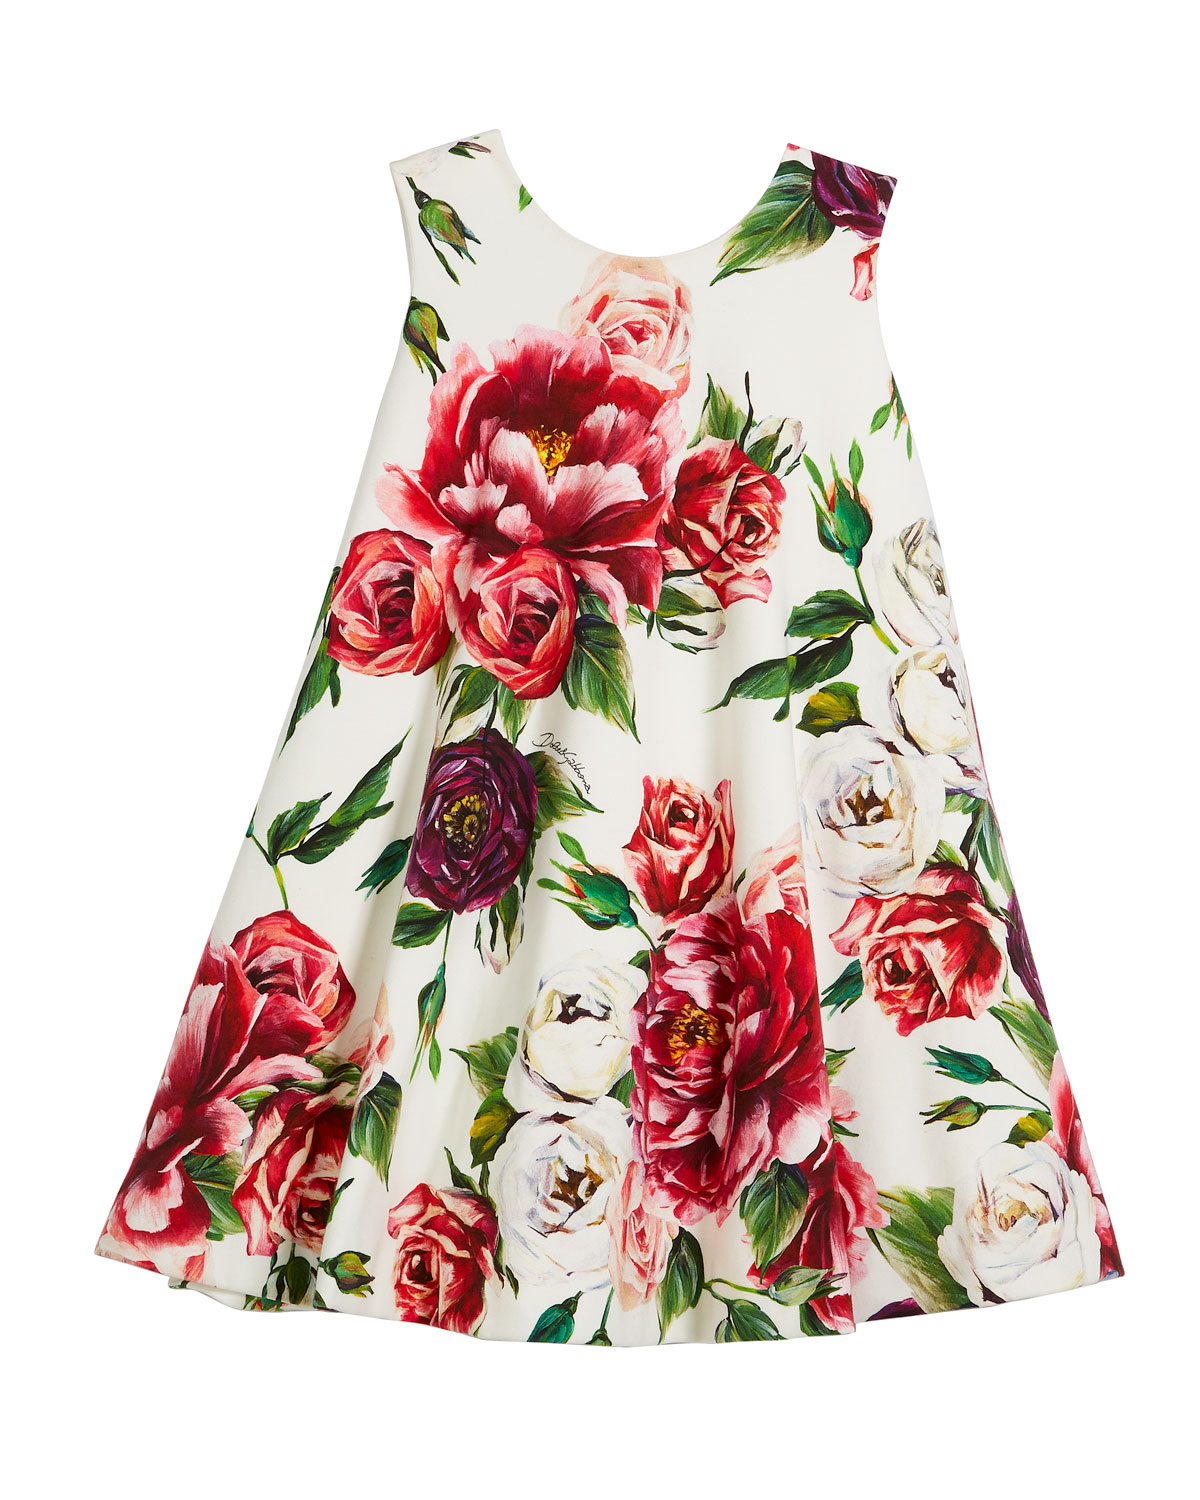 Peony-Print Jersey Swing Dress, Size 4-6